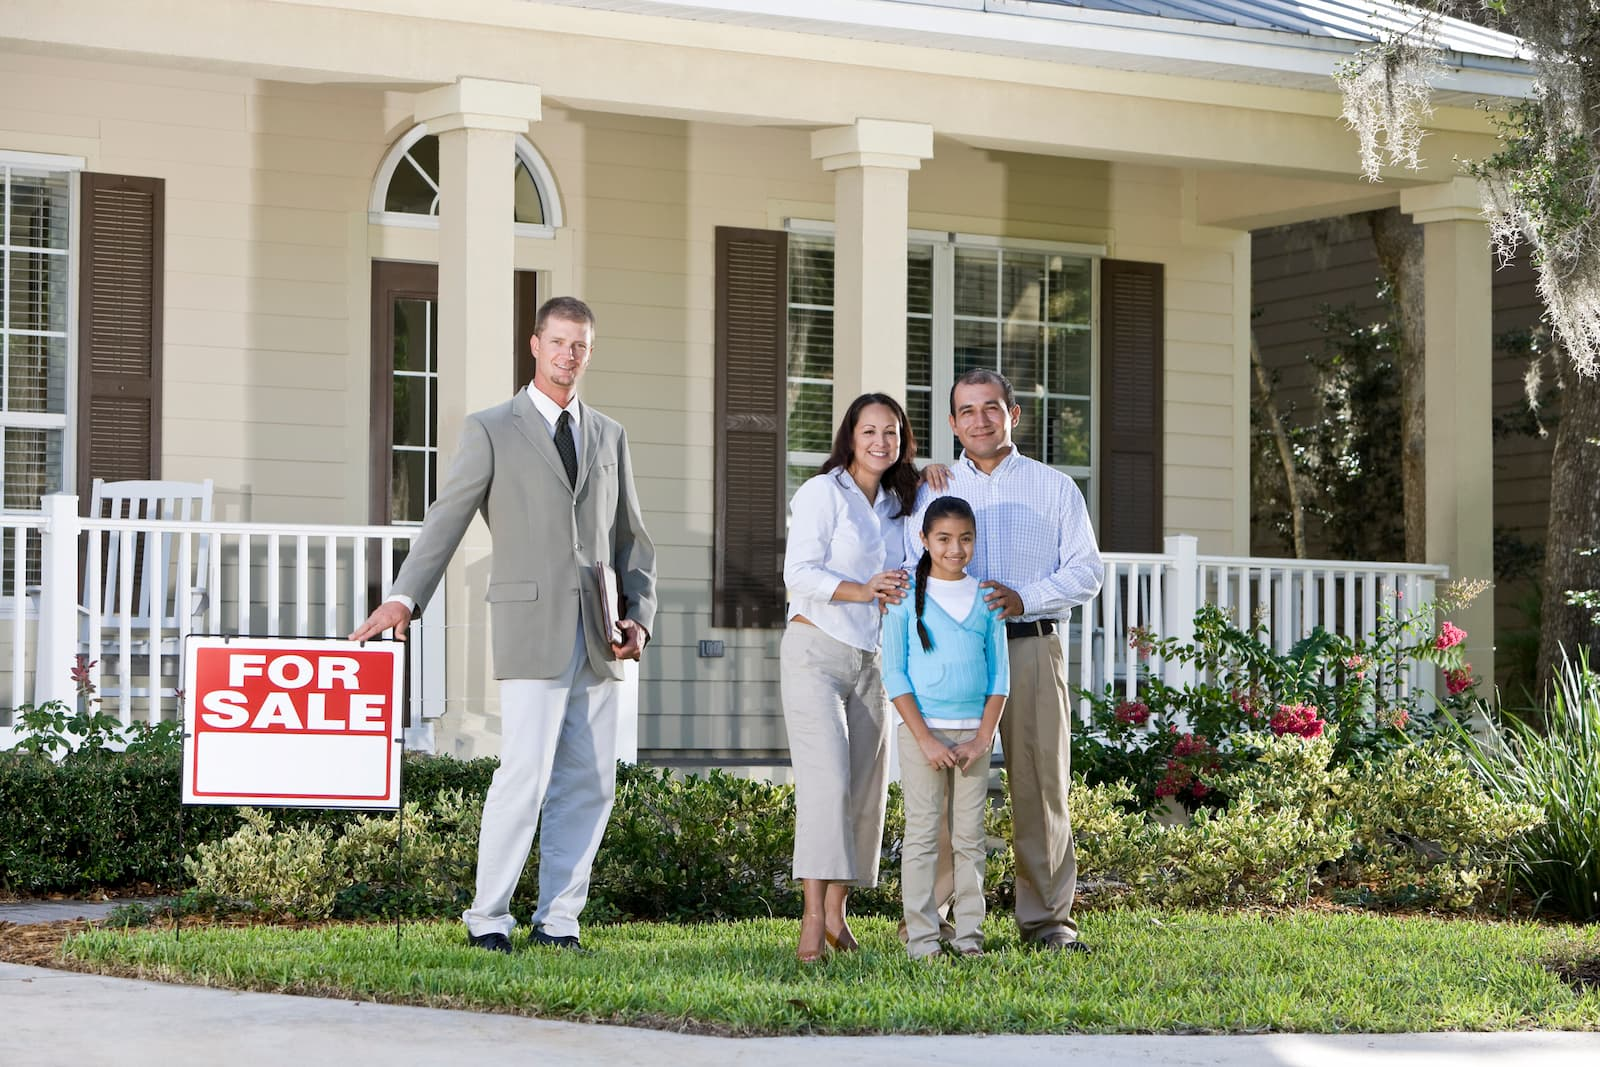 A family with the realtor in front of the house they just had appraised